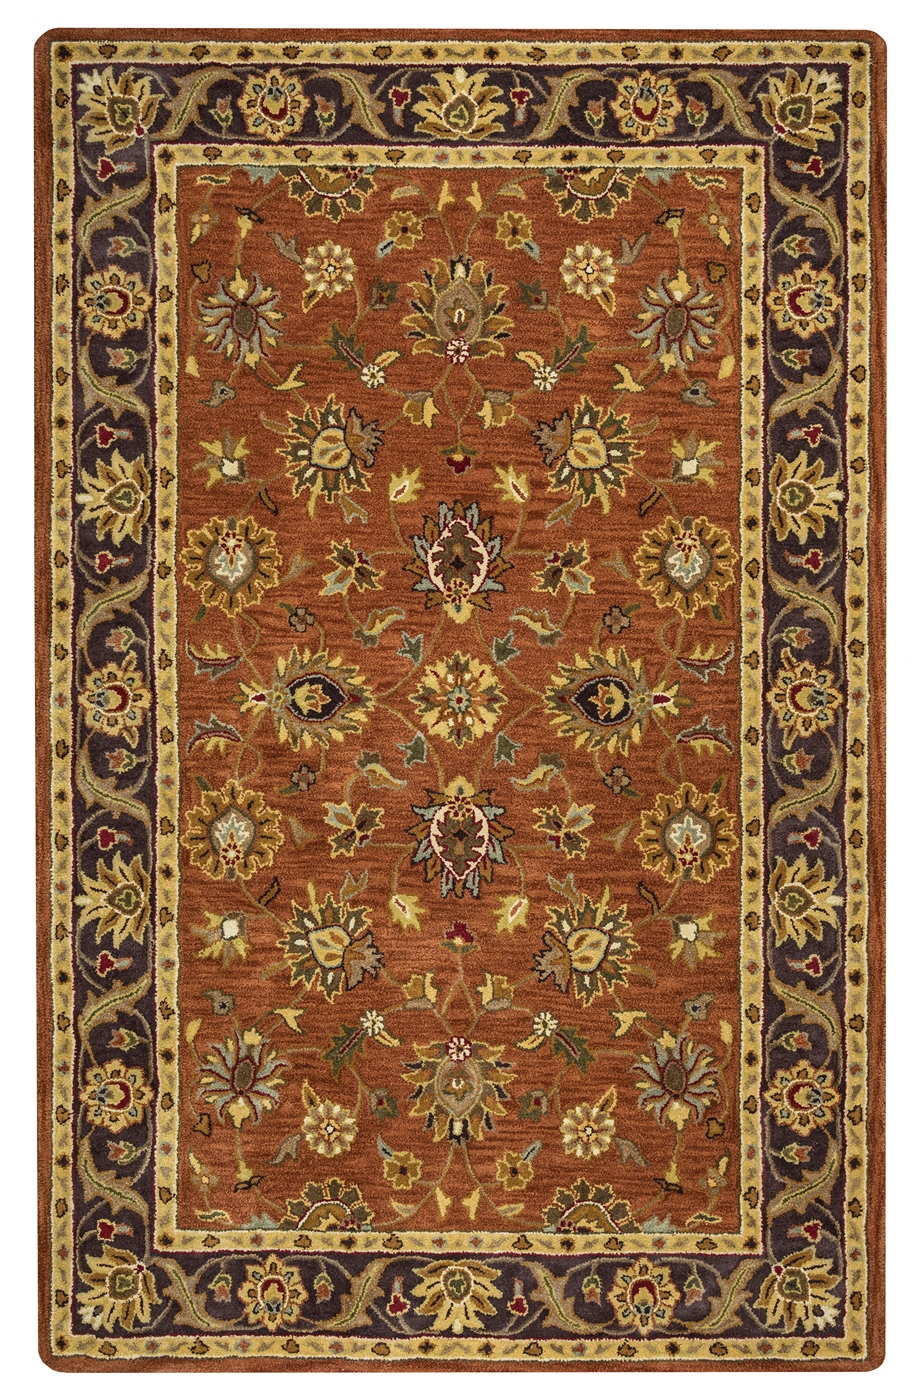 valintino bordered flowers wool area rug in rust black tan. Black Bedroom Furniture Sets. Home Design Ideas